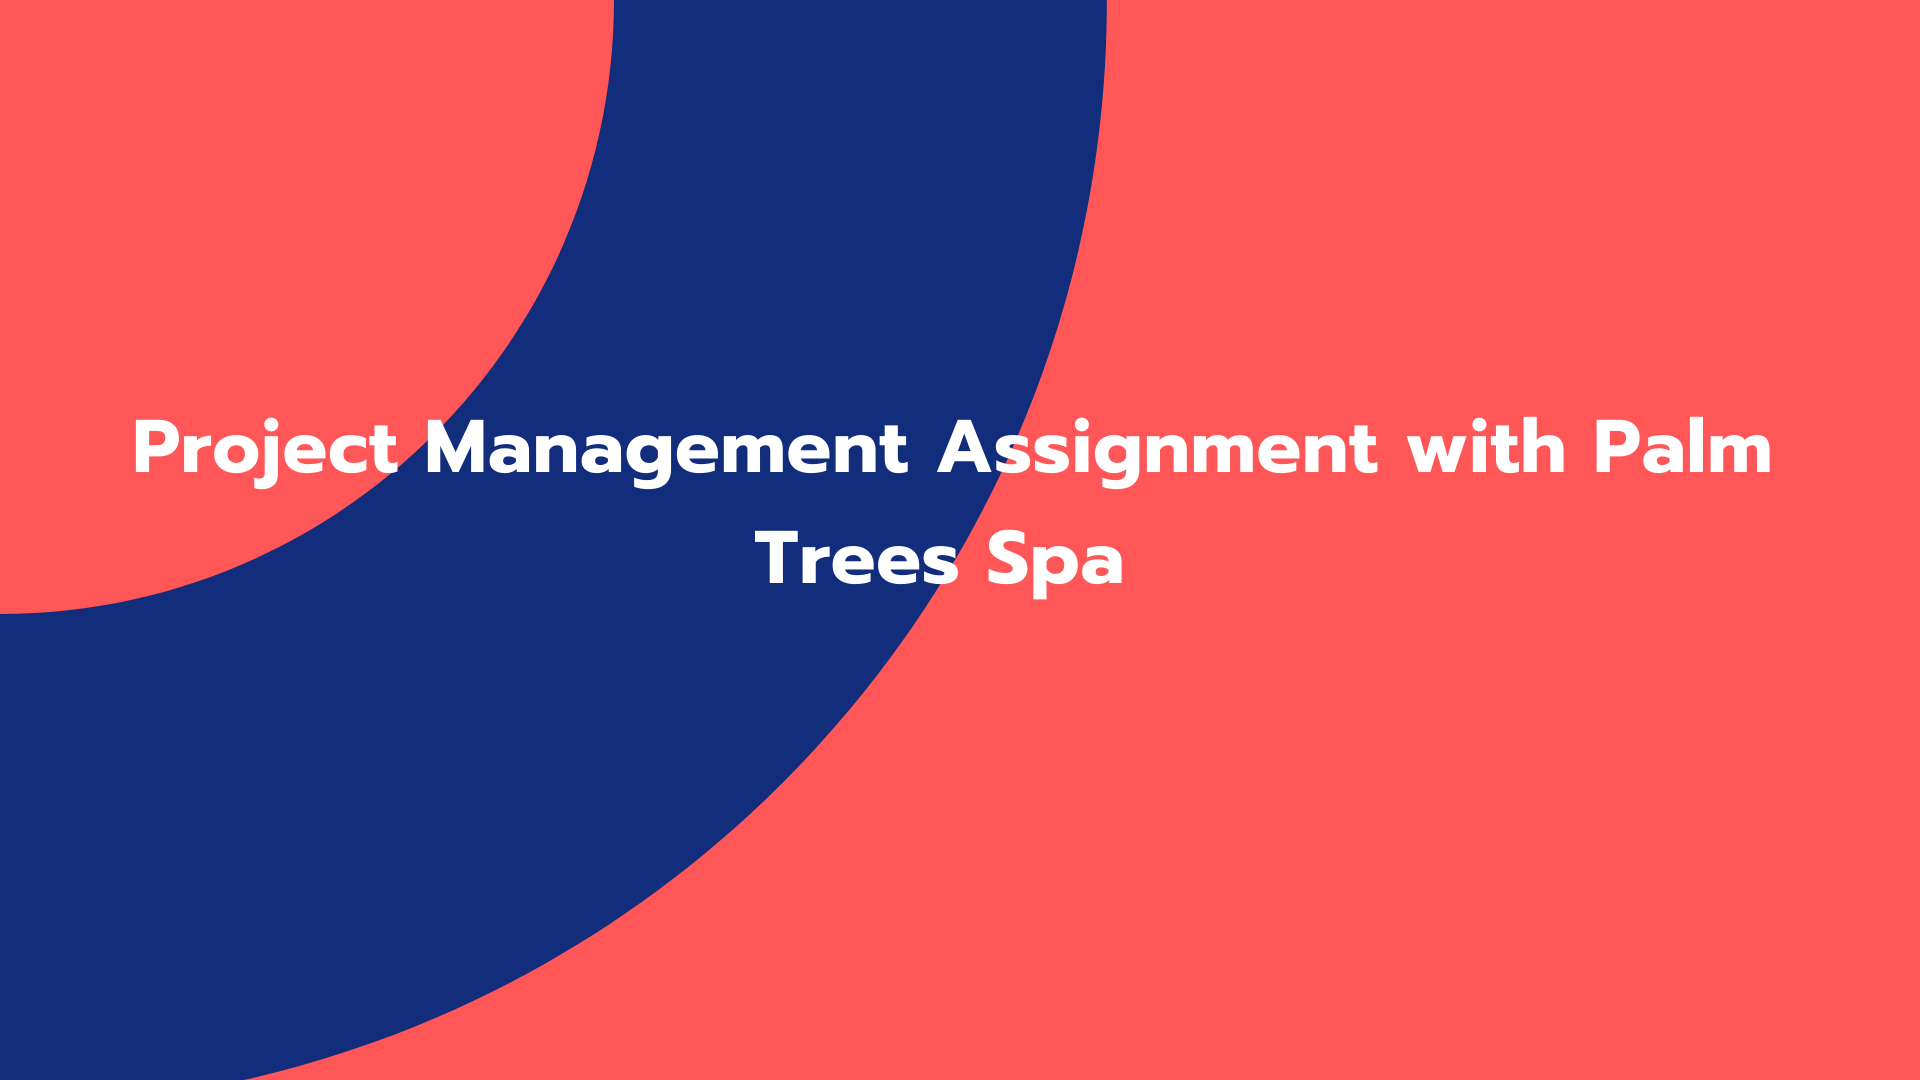 Project Management Assignment with Palm Trees Spa